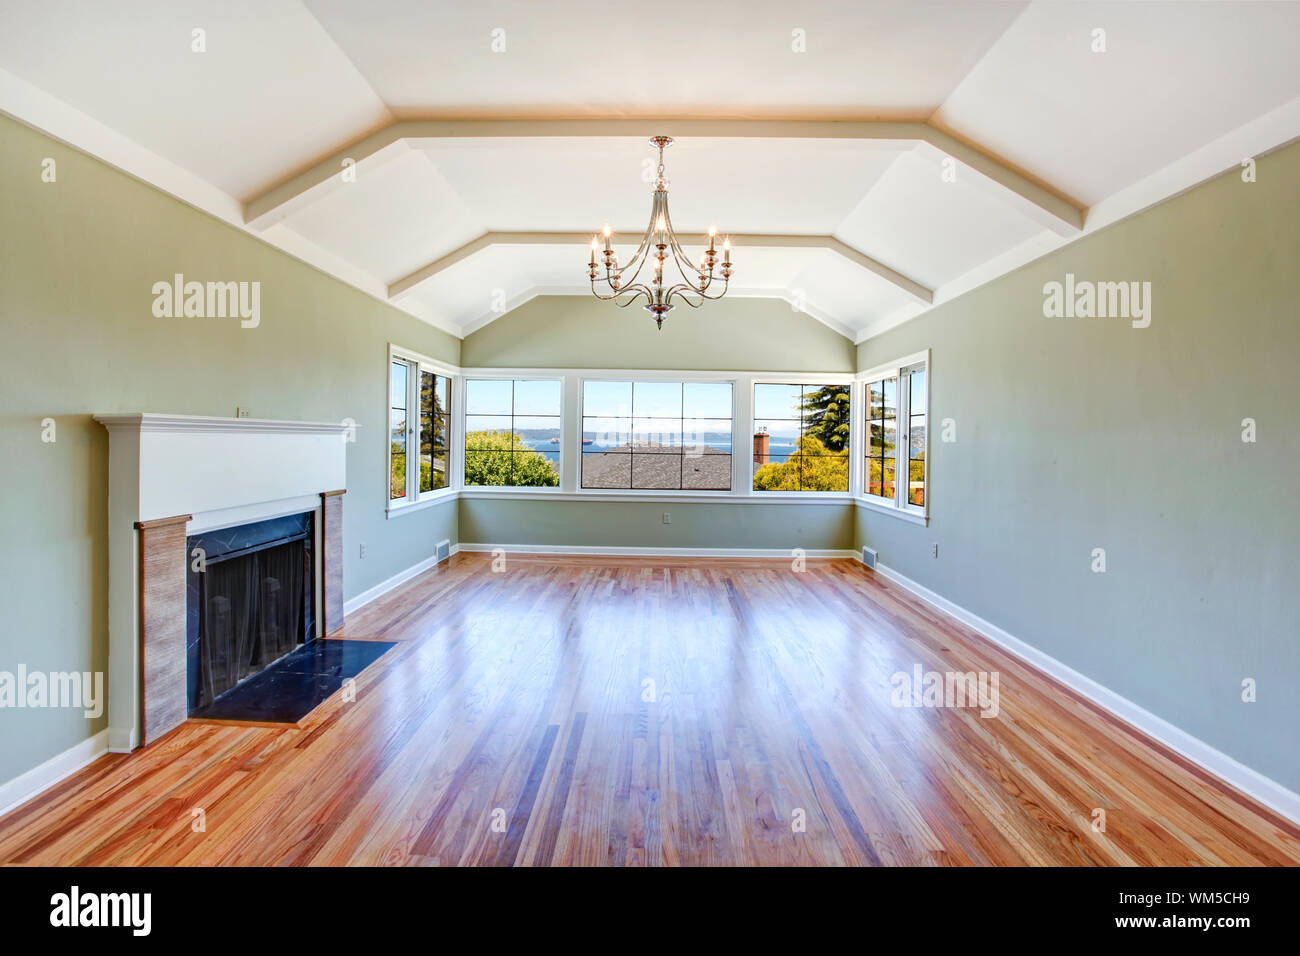 Empty specious living room interior with vaulted ceiling, light mint walls, hardwood floor and fireplace. Room with bay view Stock Photo